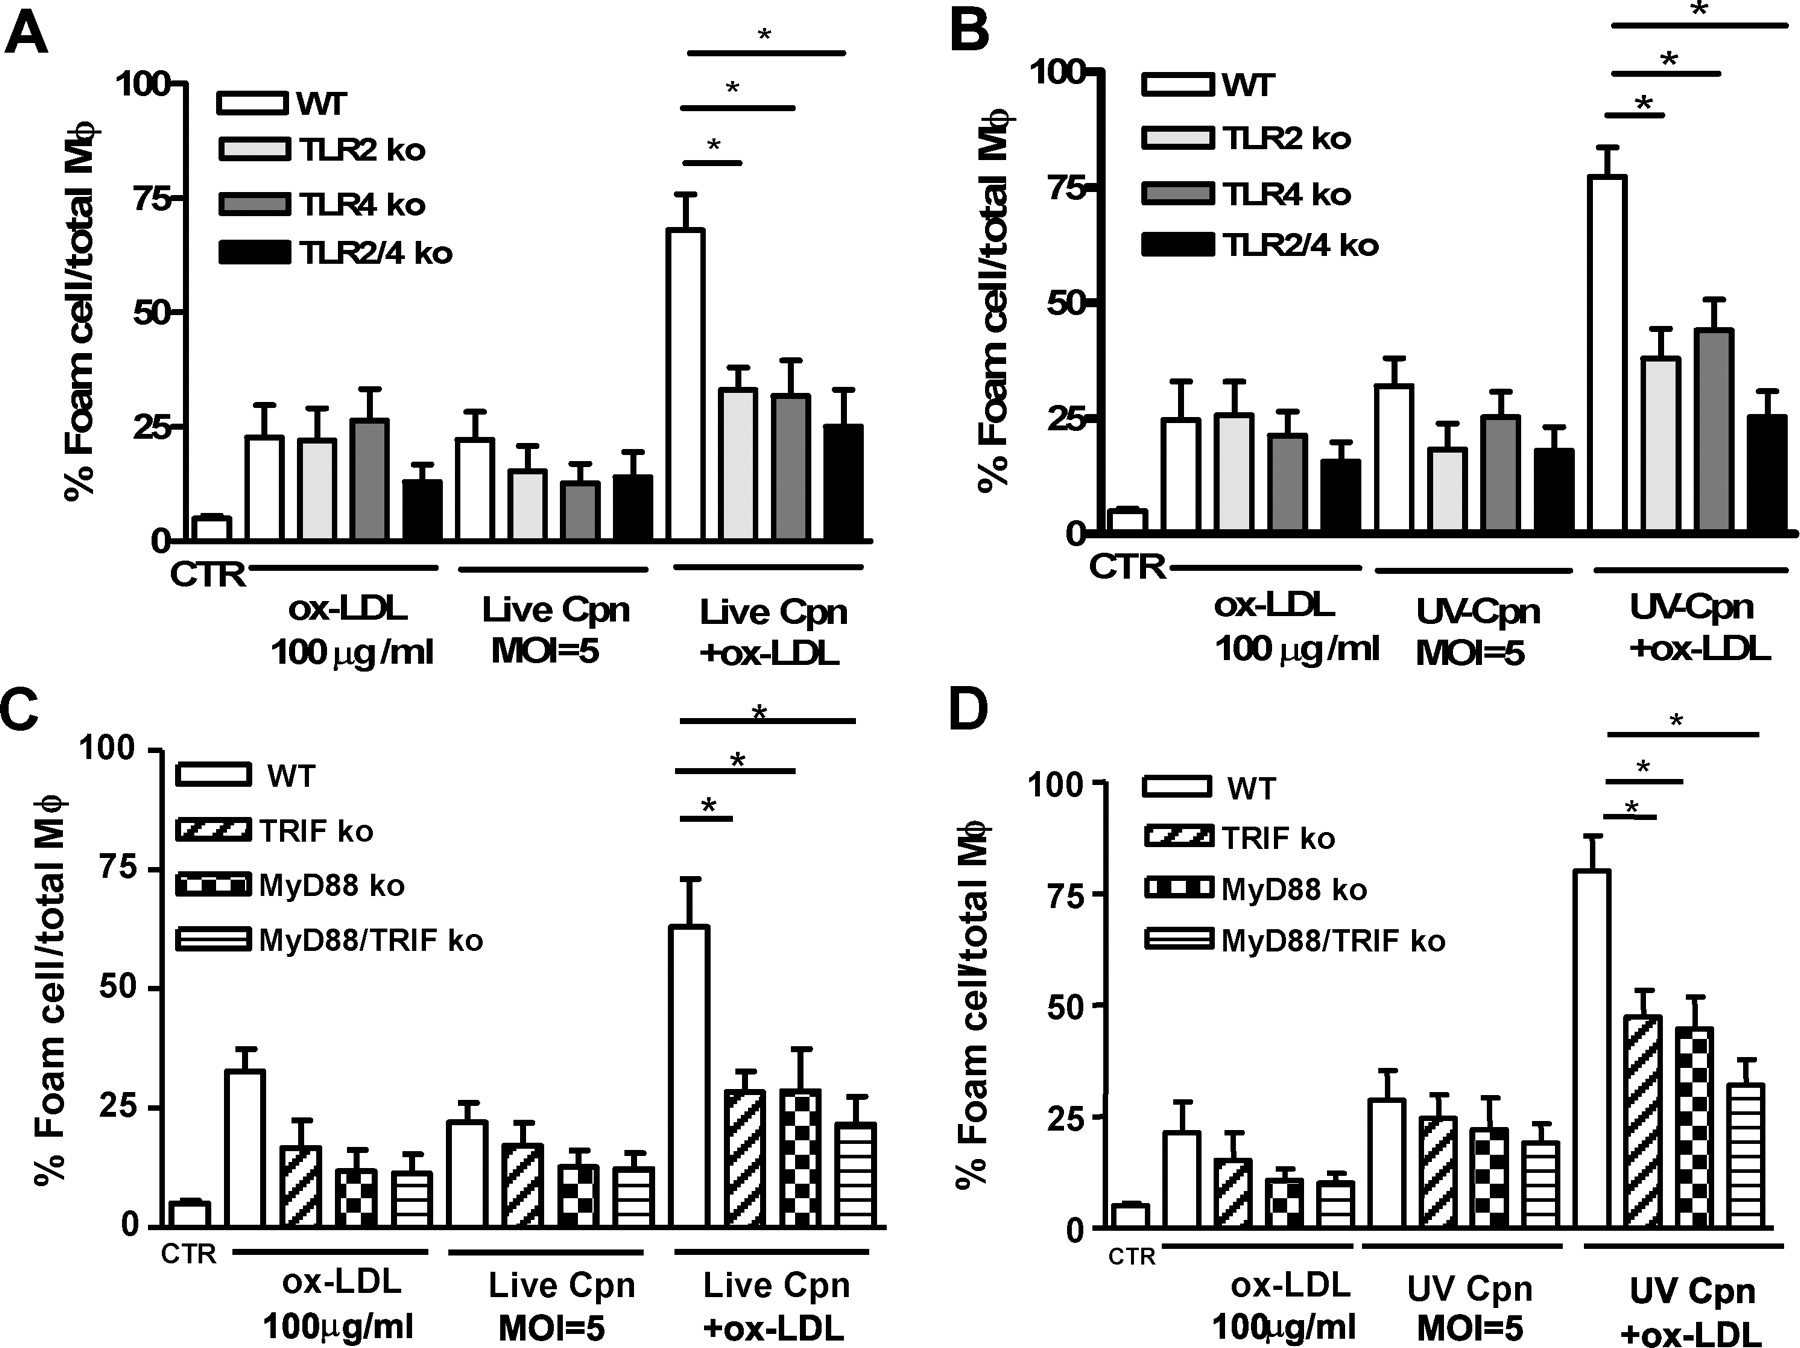 Chlamydia pneumoniae-Induced Foam Cell Formation Requires MyD88